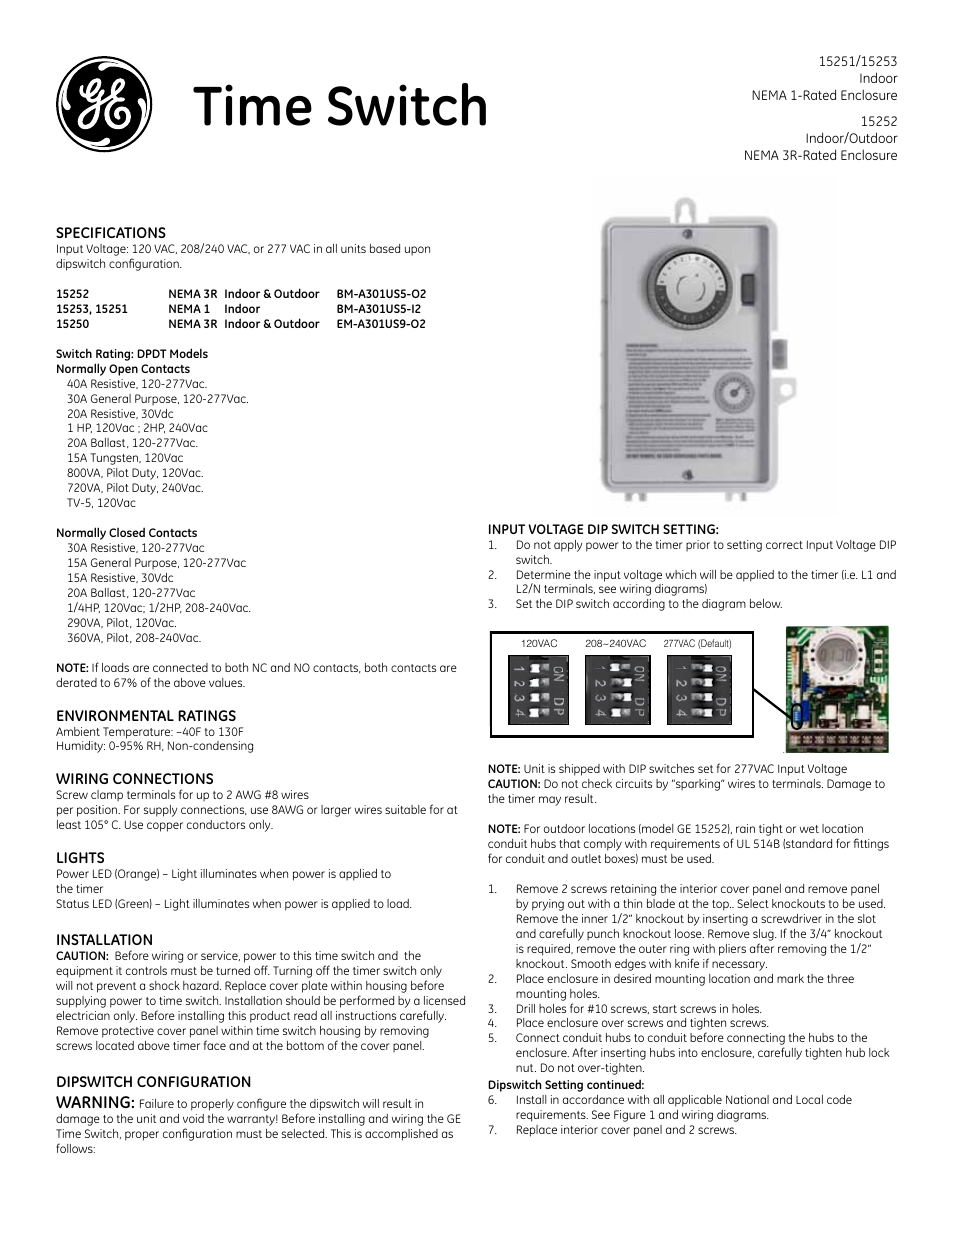 Ge Time Switch Wiring Diagram Ballast F96t12 Box Timer 15251 15252 And 15253 User Manual 2 Pages Rh Manualsdir Com T12 Electronic Advance